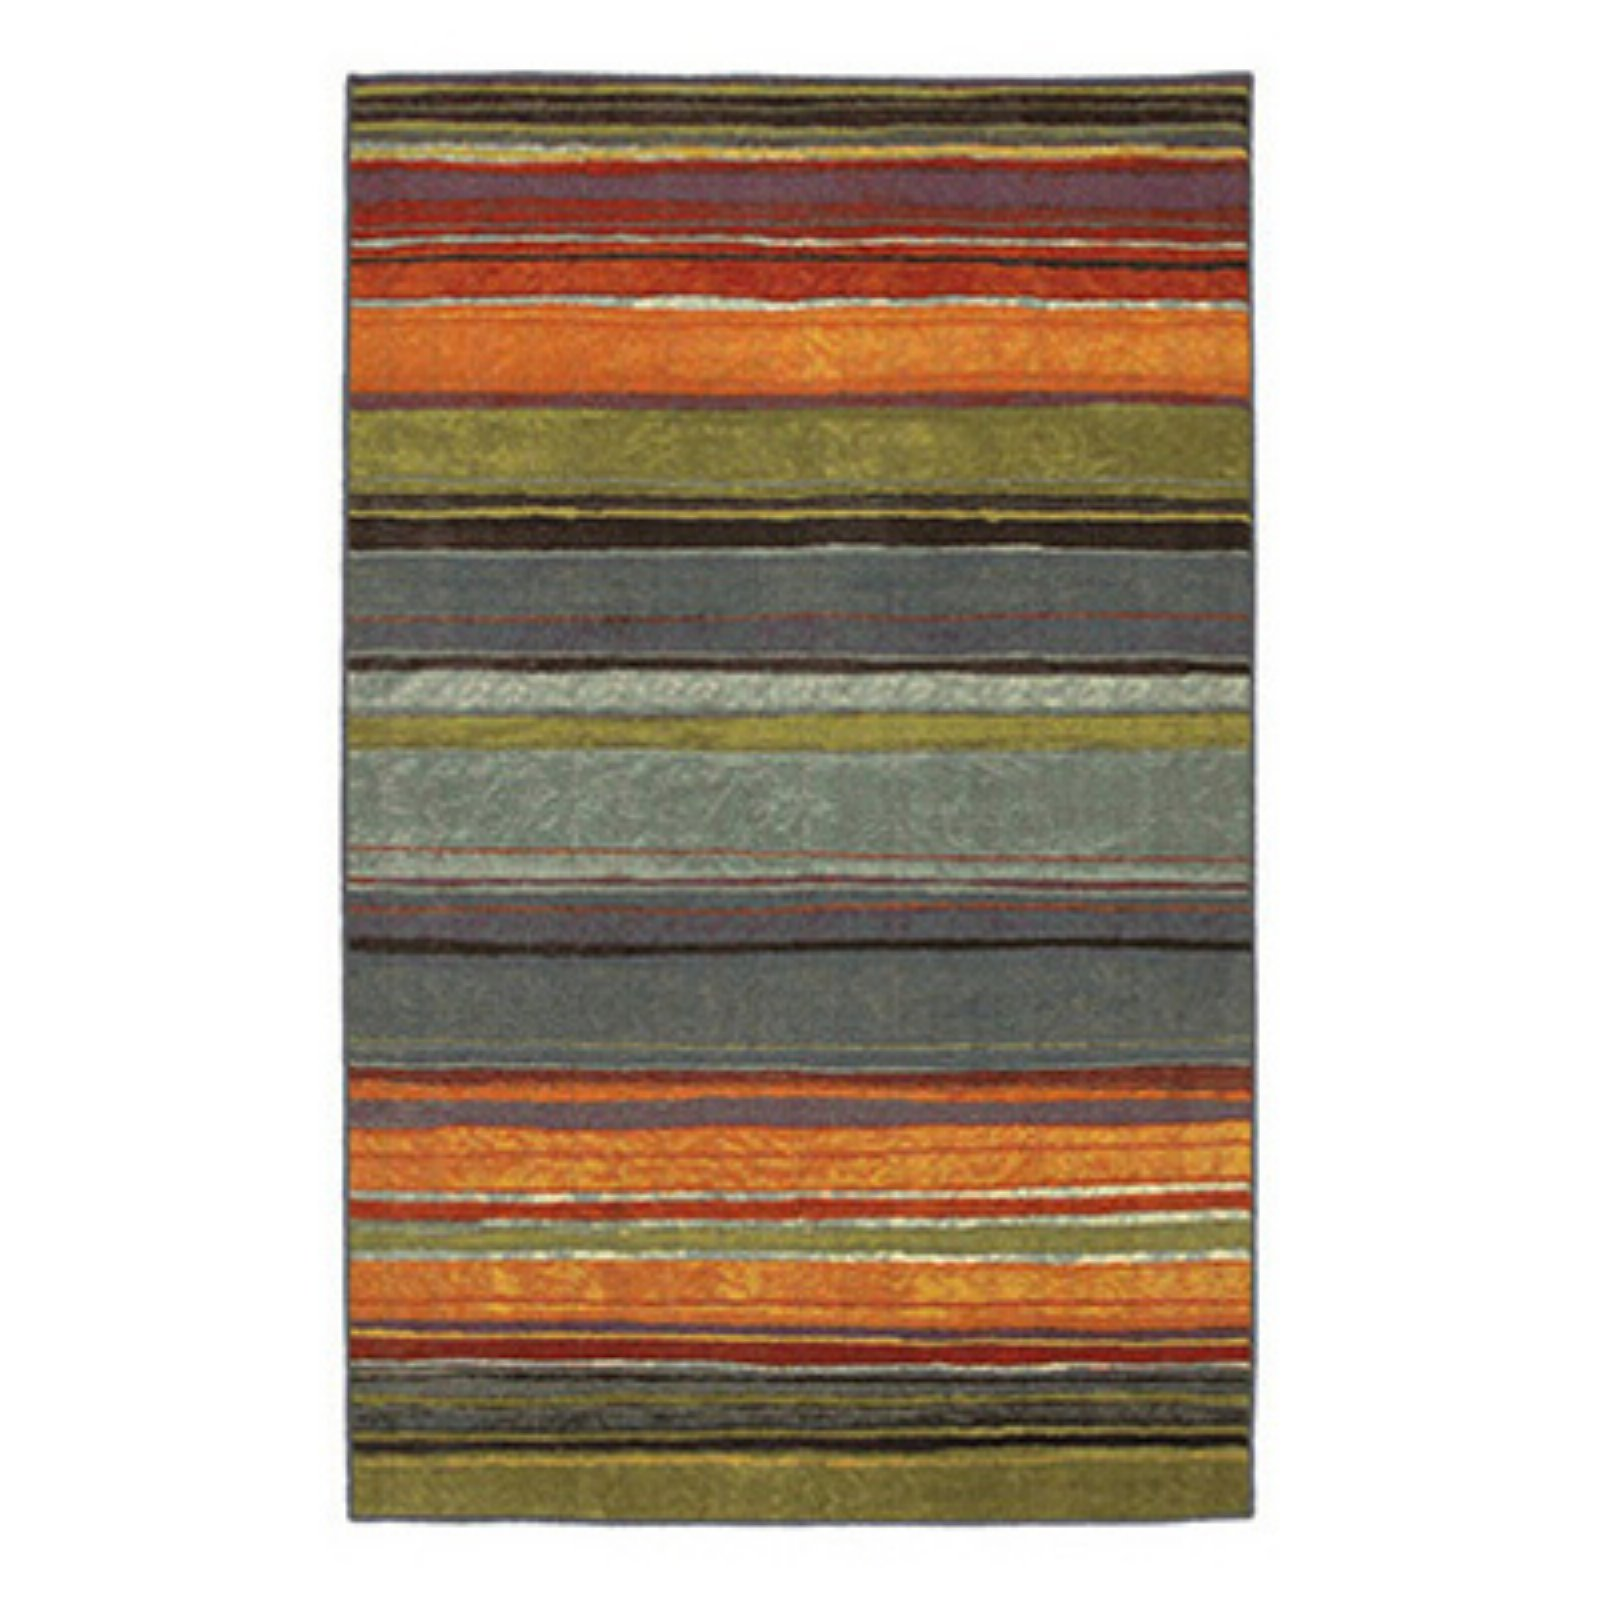 Mohawk New Wave Rainbow Rug